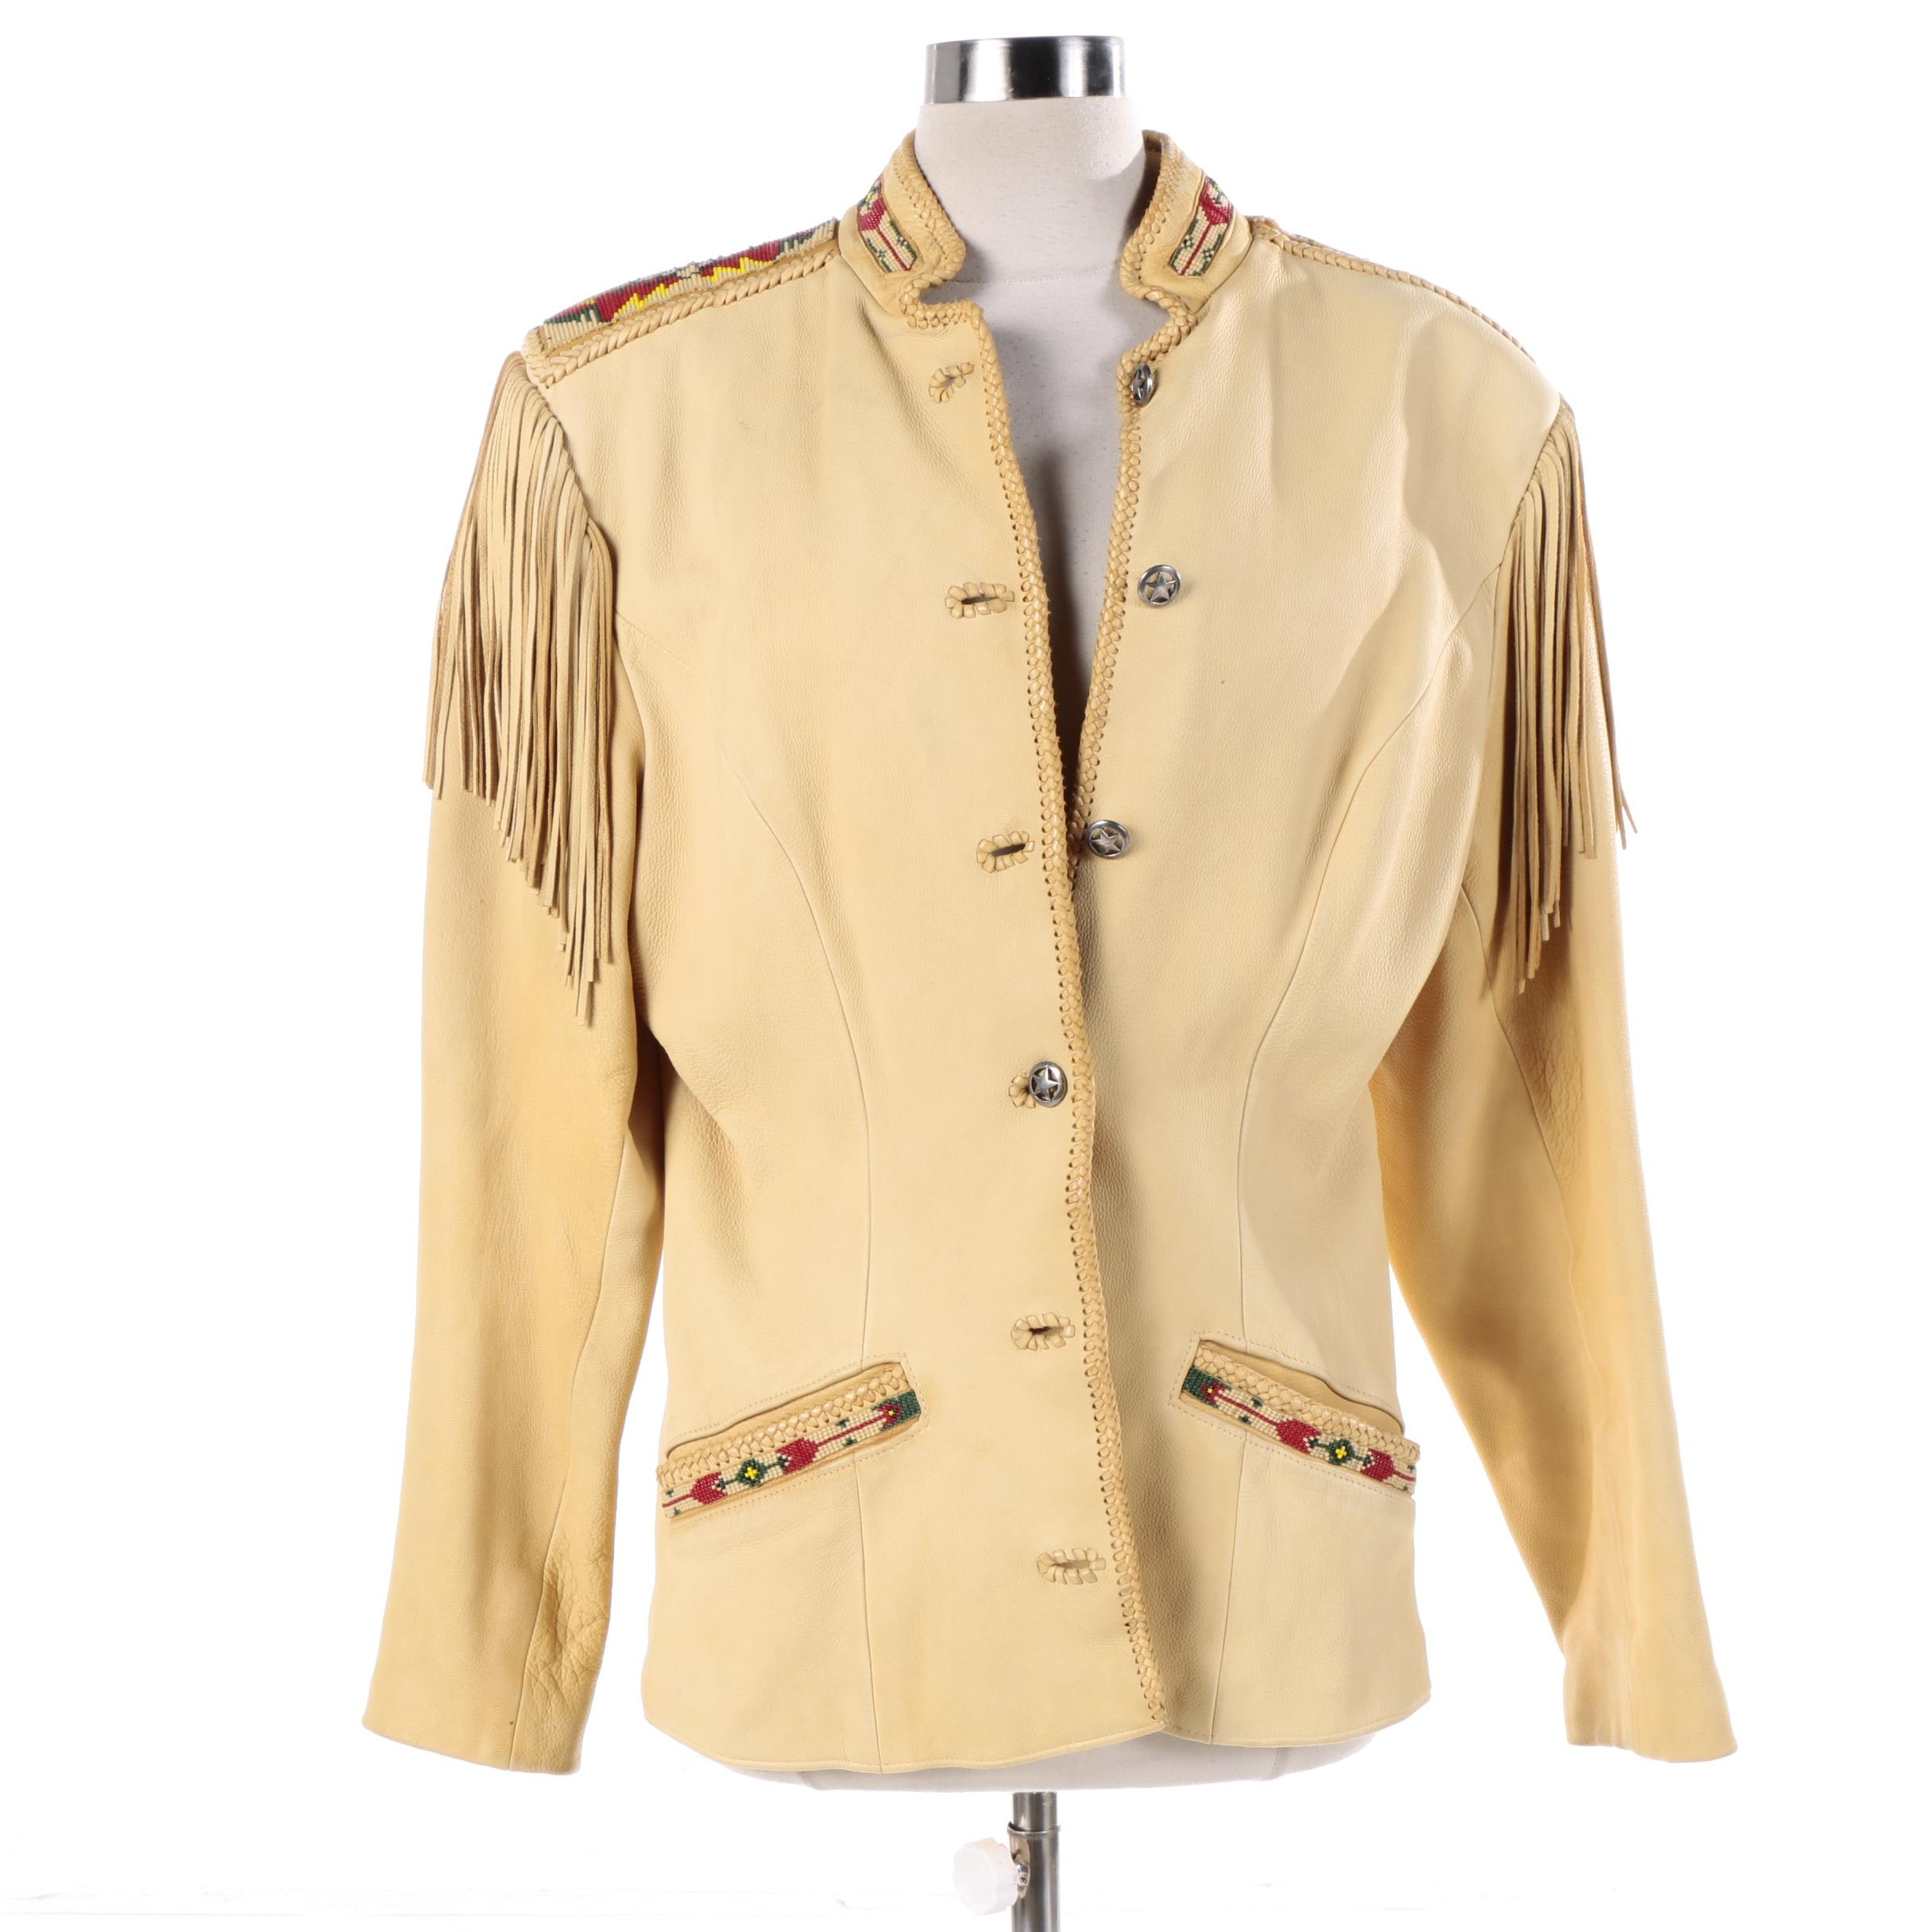 Women's Vintage Renegade by Ren Ellis Western Style Cream Leather Jacket